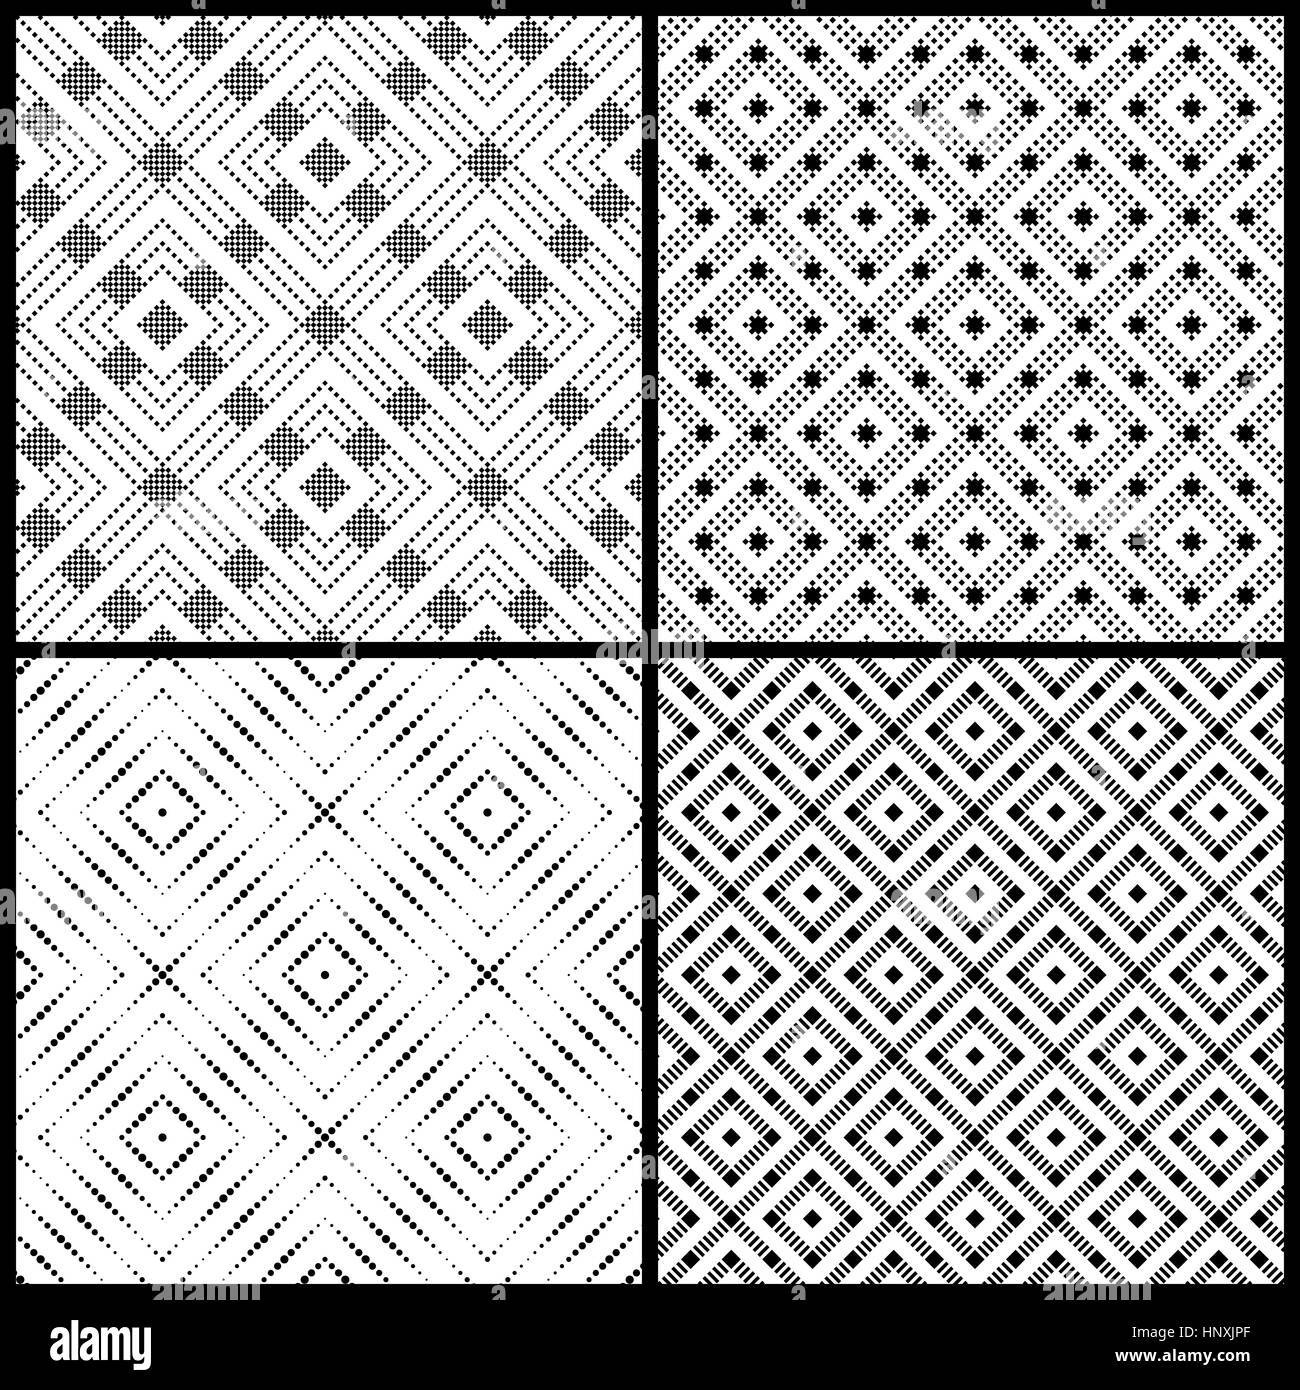 Seamless pattern. Collection of four simple classic textures with small dots, squares. Repeating geometric shapes, - Stock Image